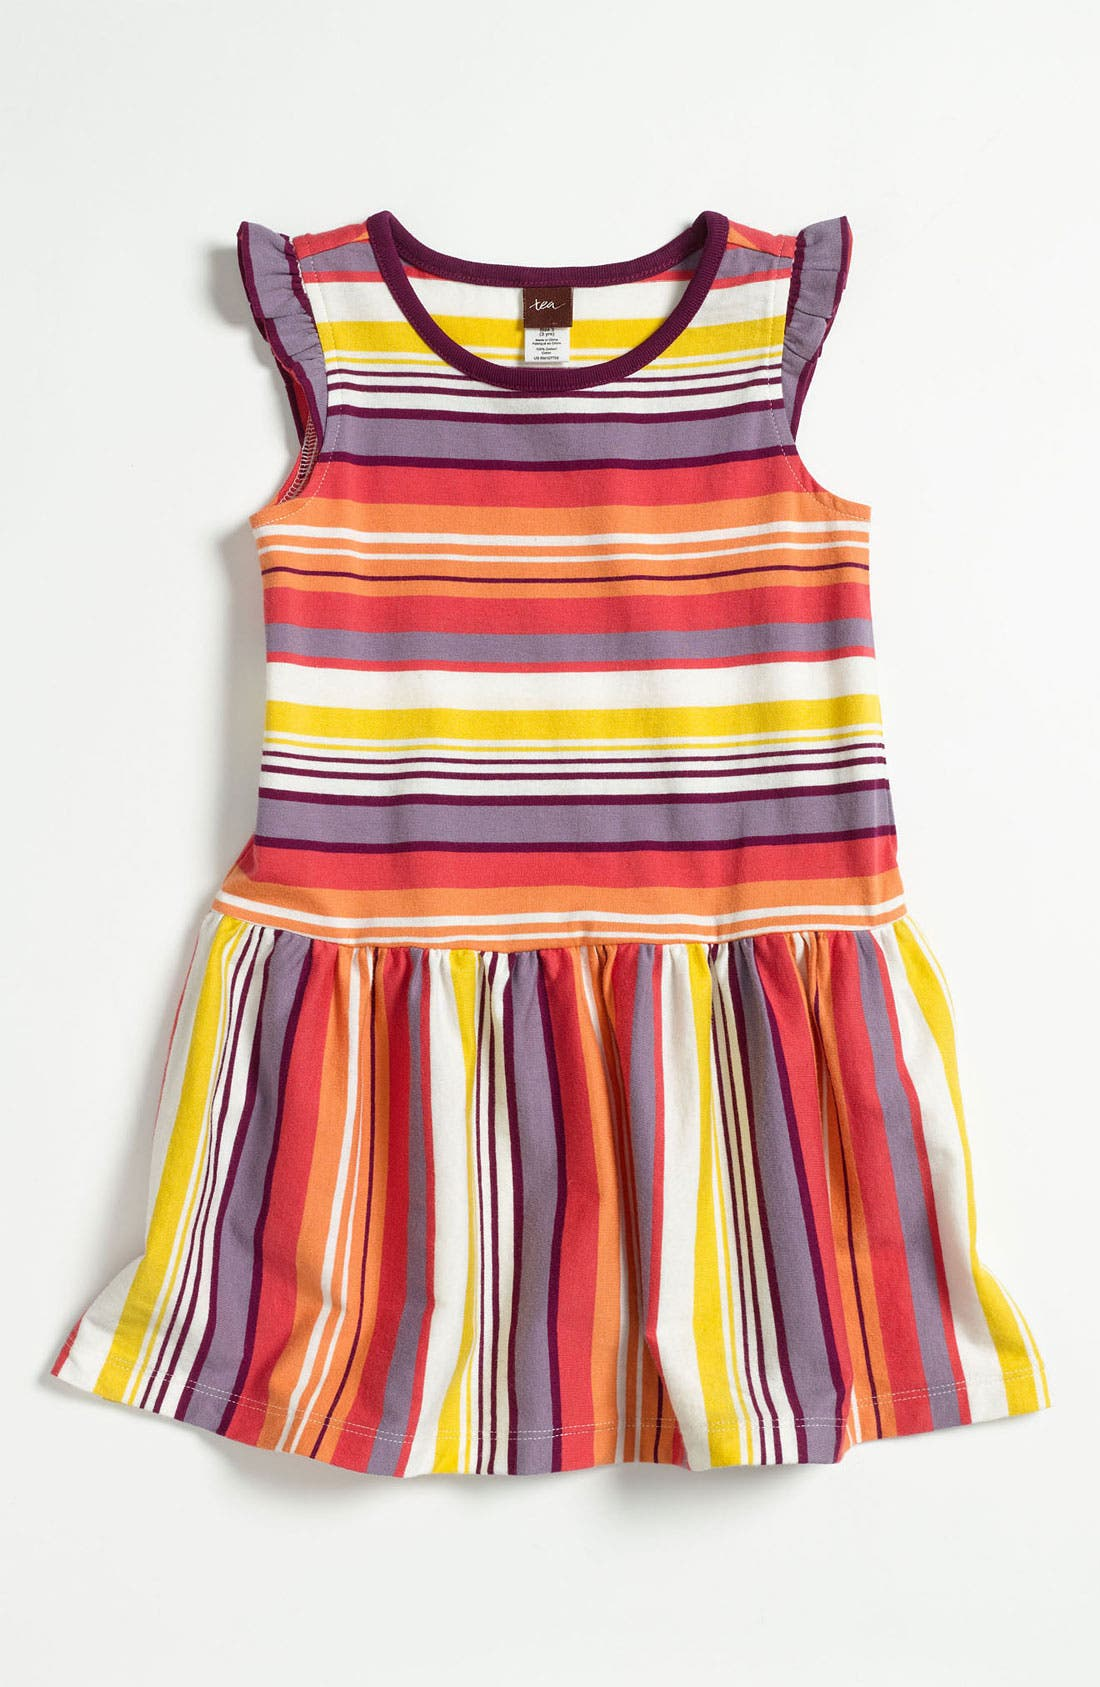 Alternate Image 1 Selected - Tea Collection 'Sunset Stripe' Dress (Infant)